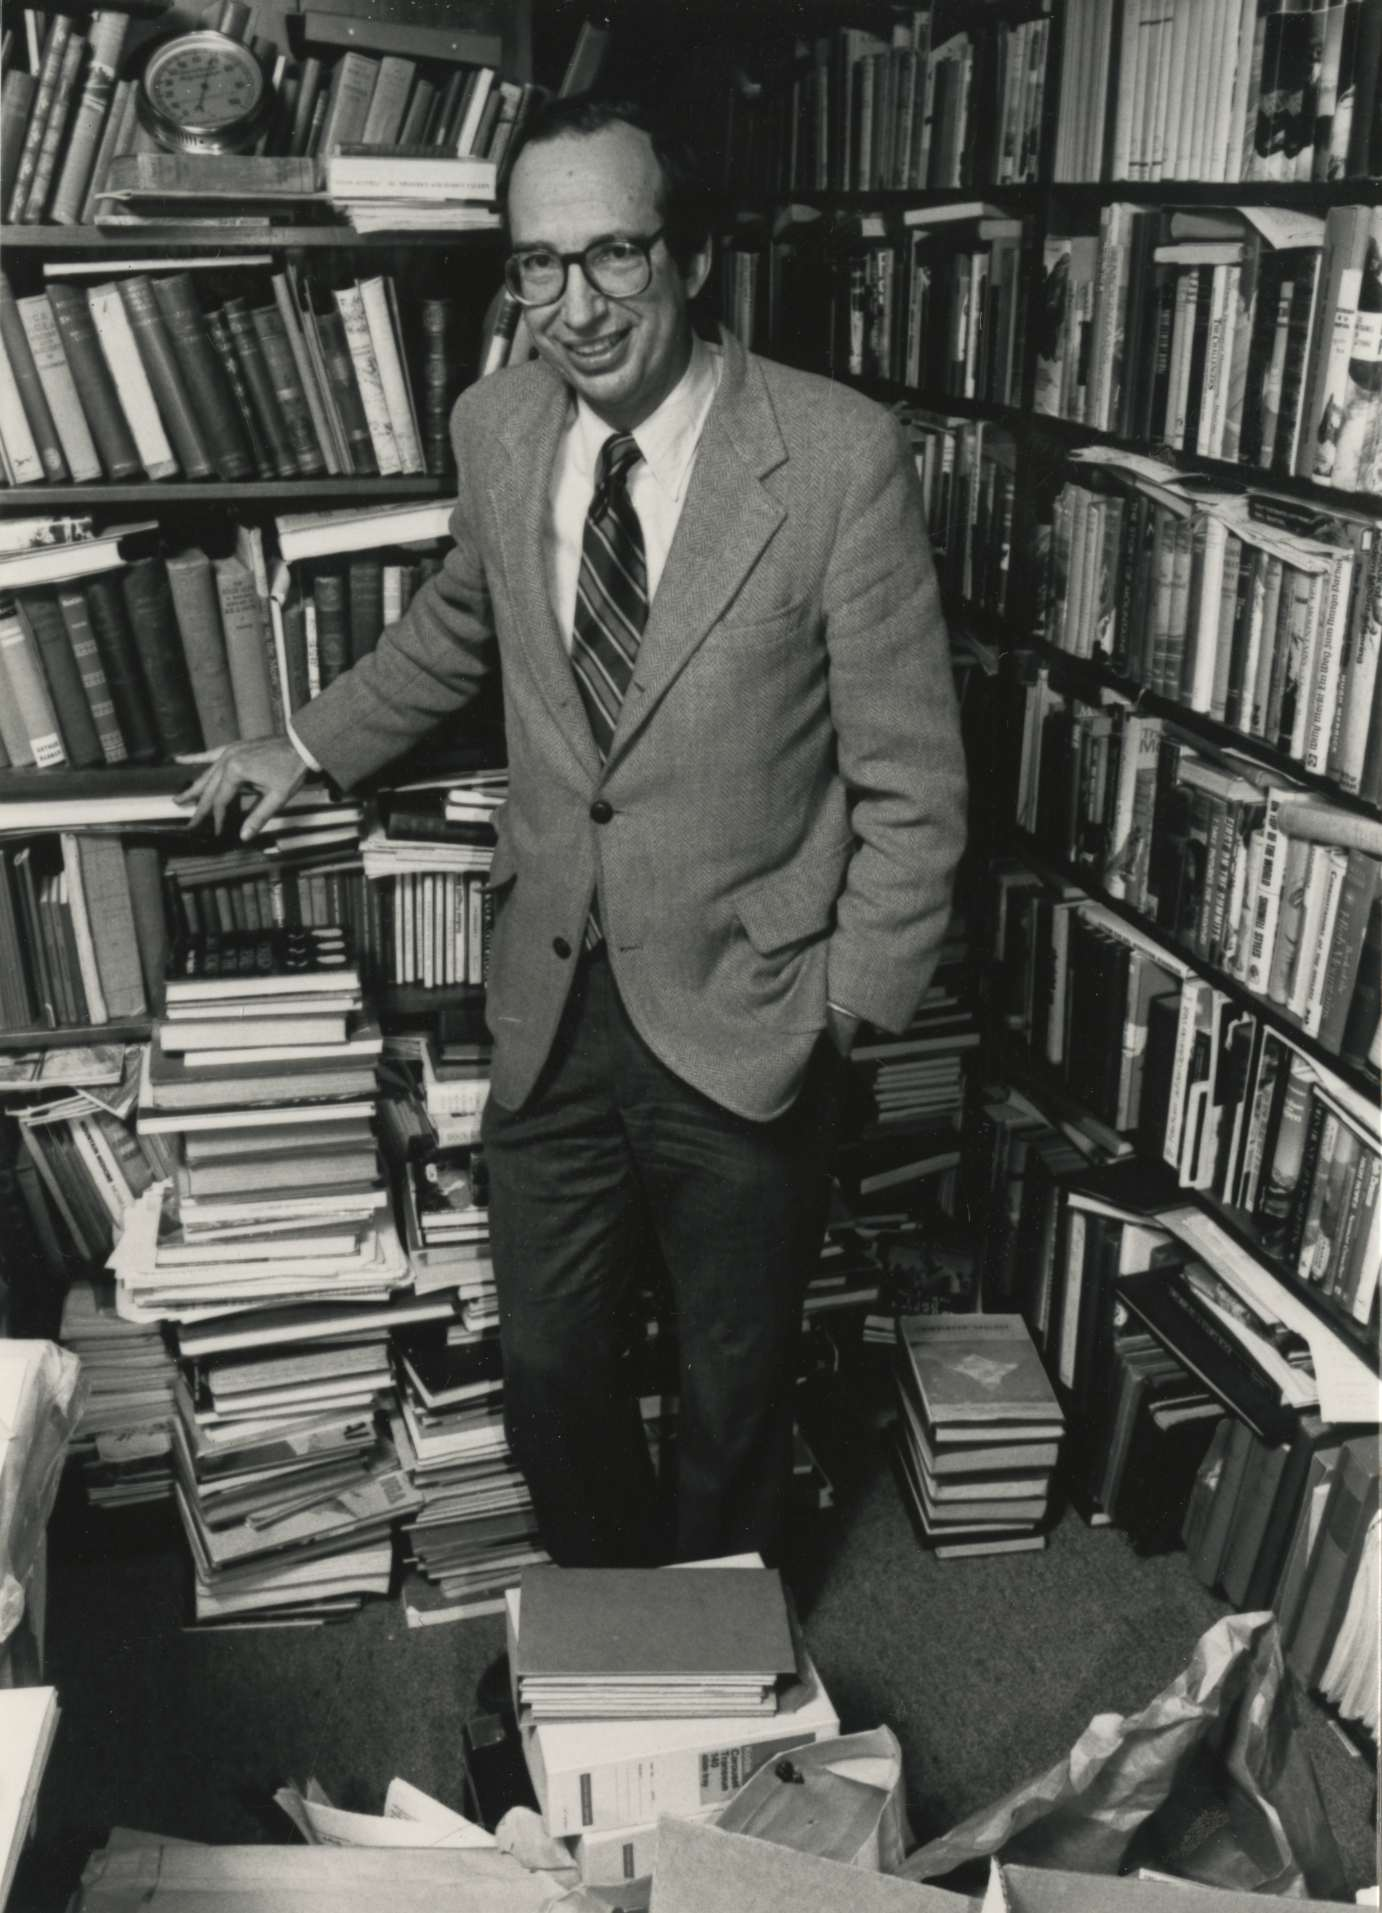 Nick Clinch in his library.